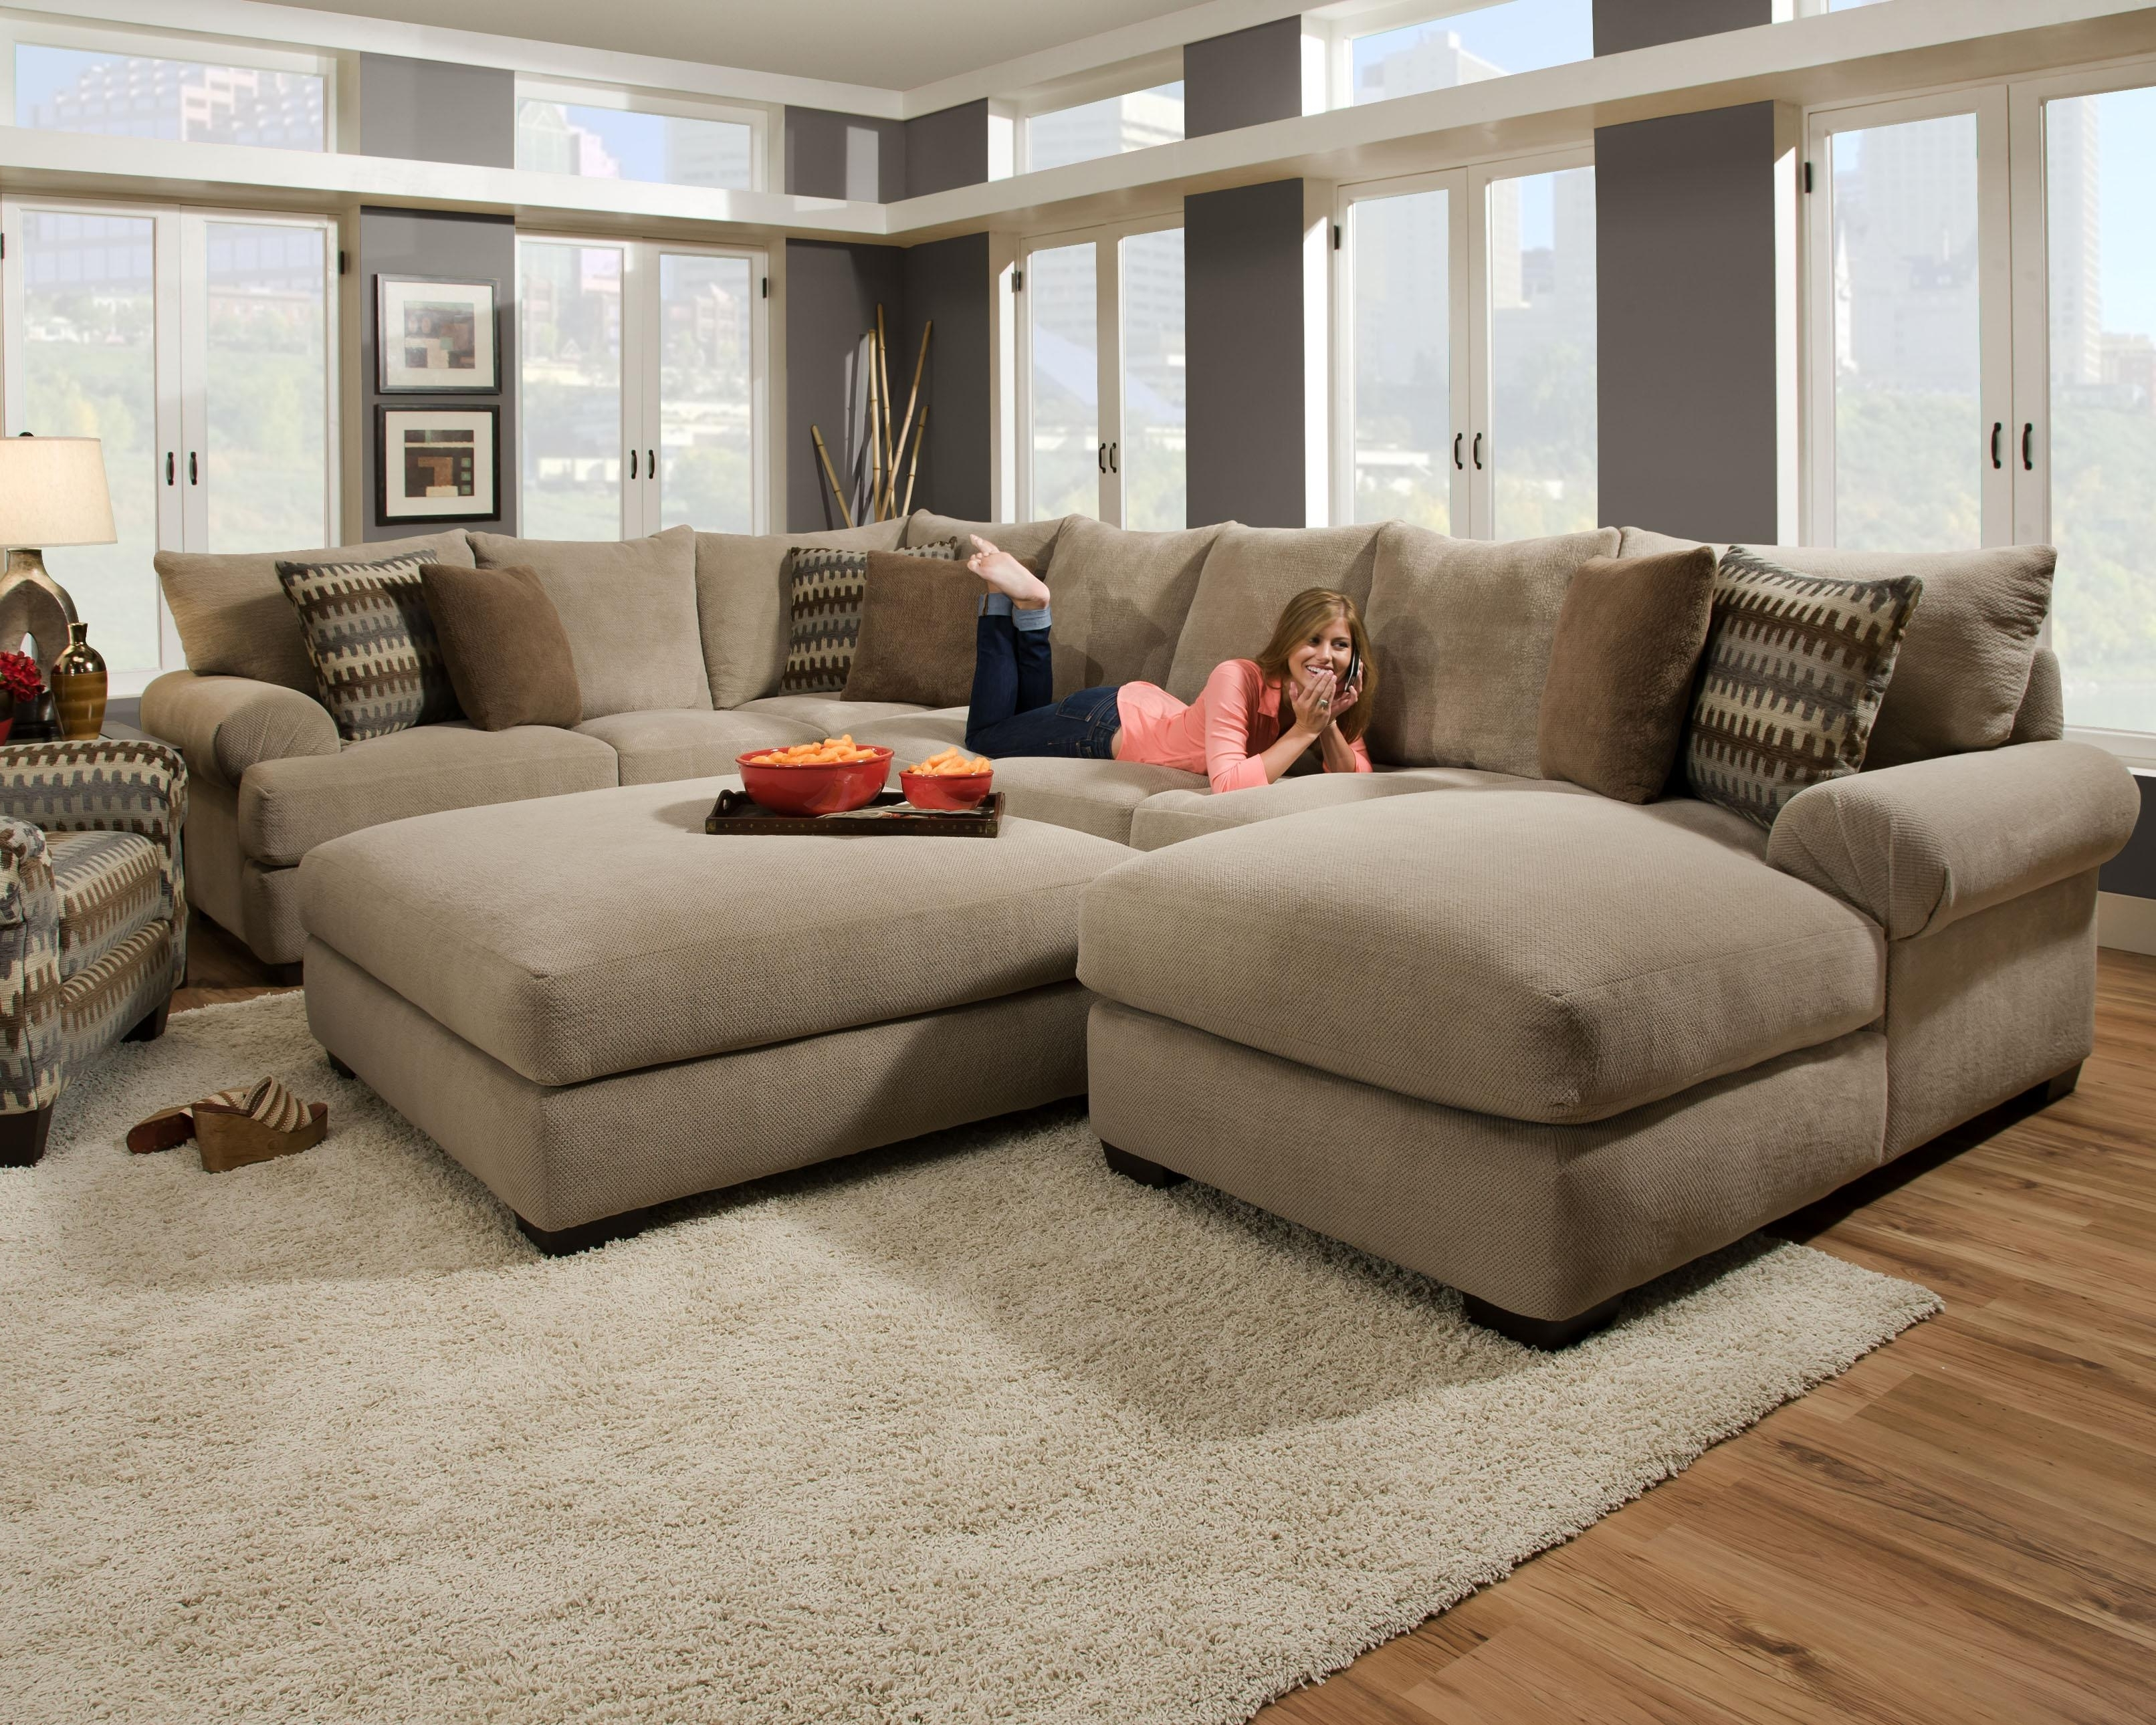 Most Recently Released Furniture: Interesting Living Room Interior Using Large Sectional Pertaining To Microfiber Sectionals With Chaise (View 13 of 15)